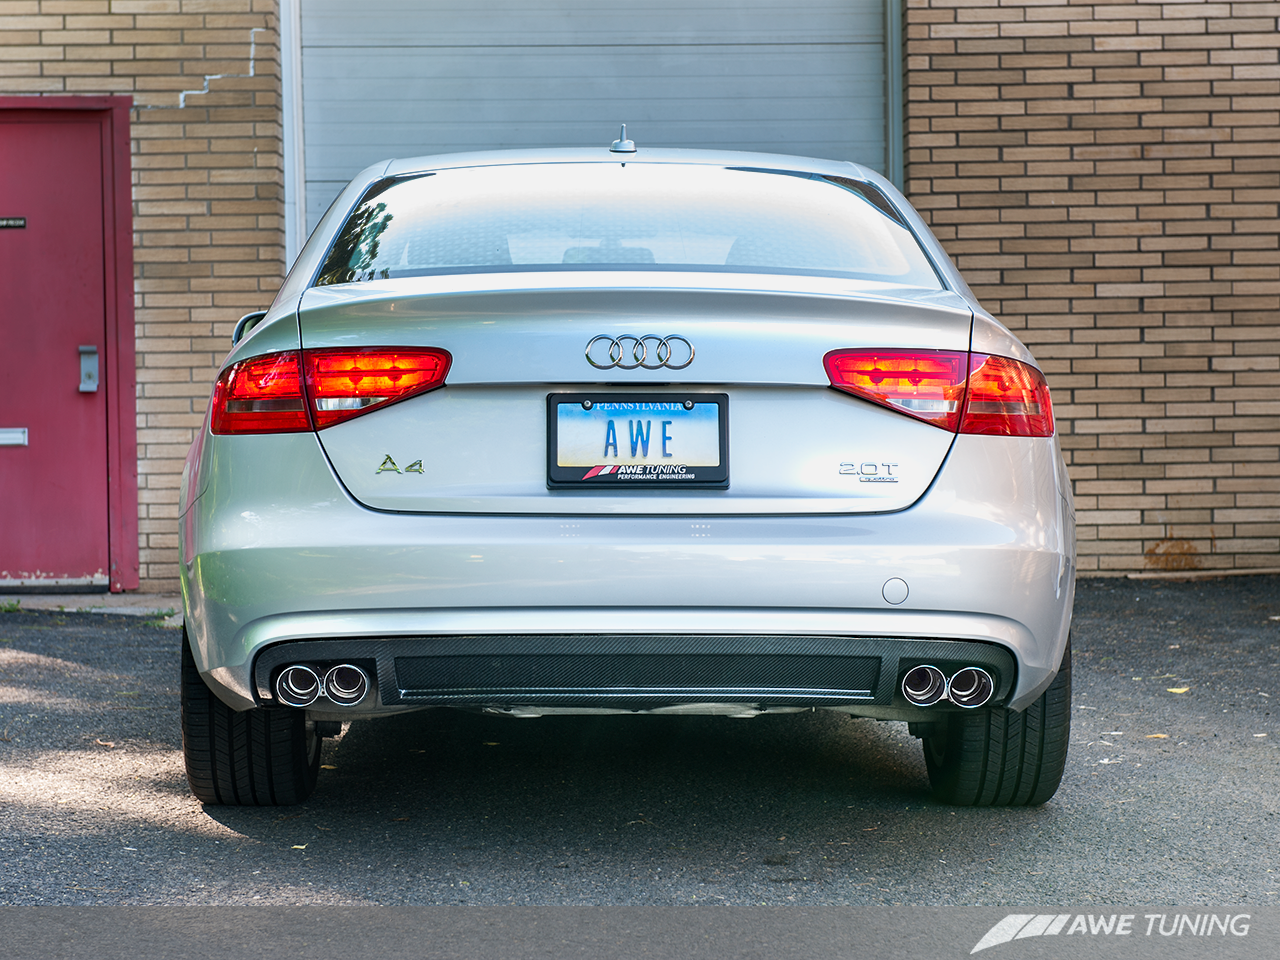 AWE Tuning A4 B8.5 2.0TFSI Touring Edition Exhaust - Carbon Fibre Rear Valance for Non-S-Line Models